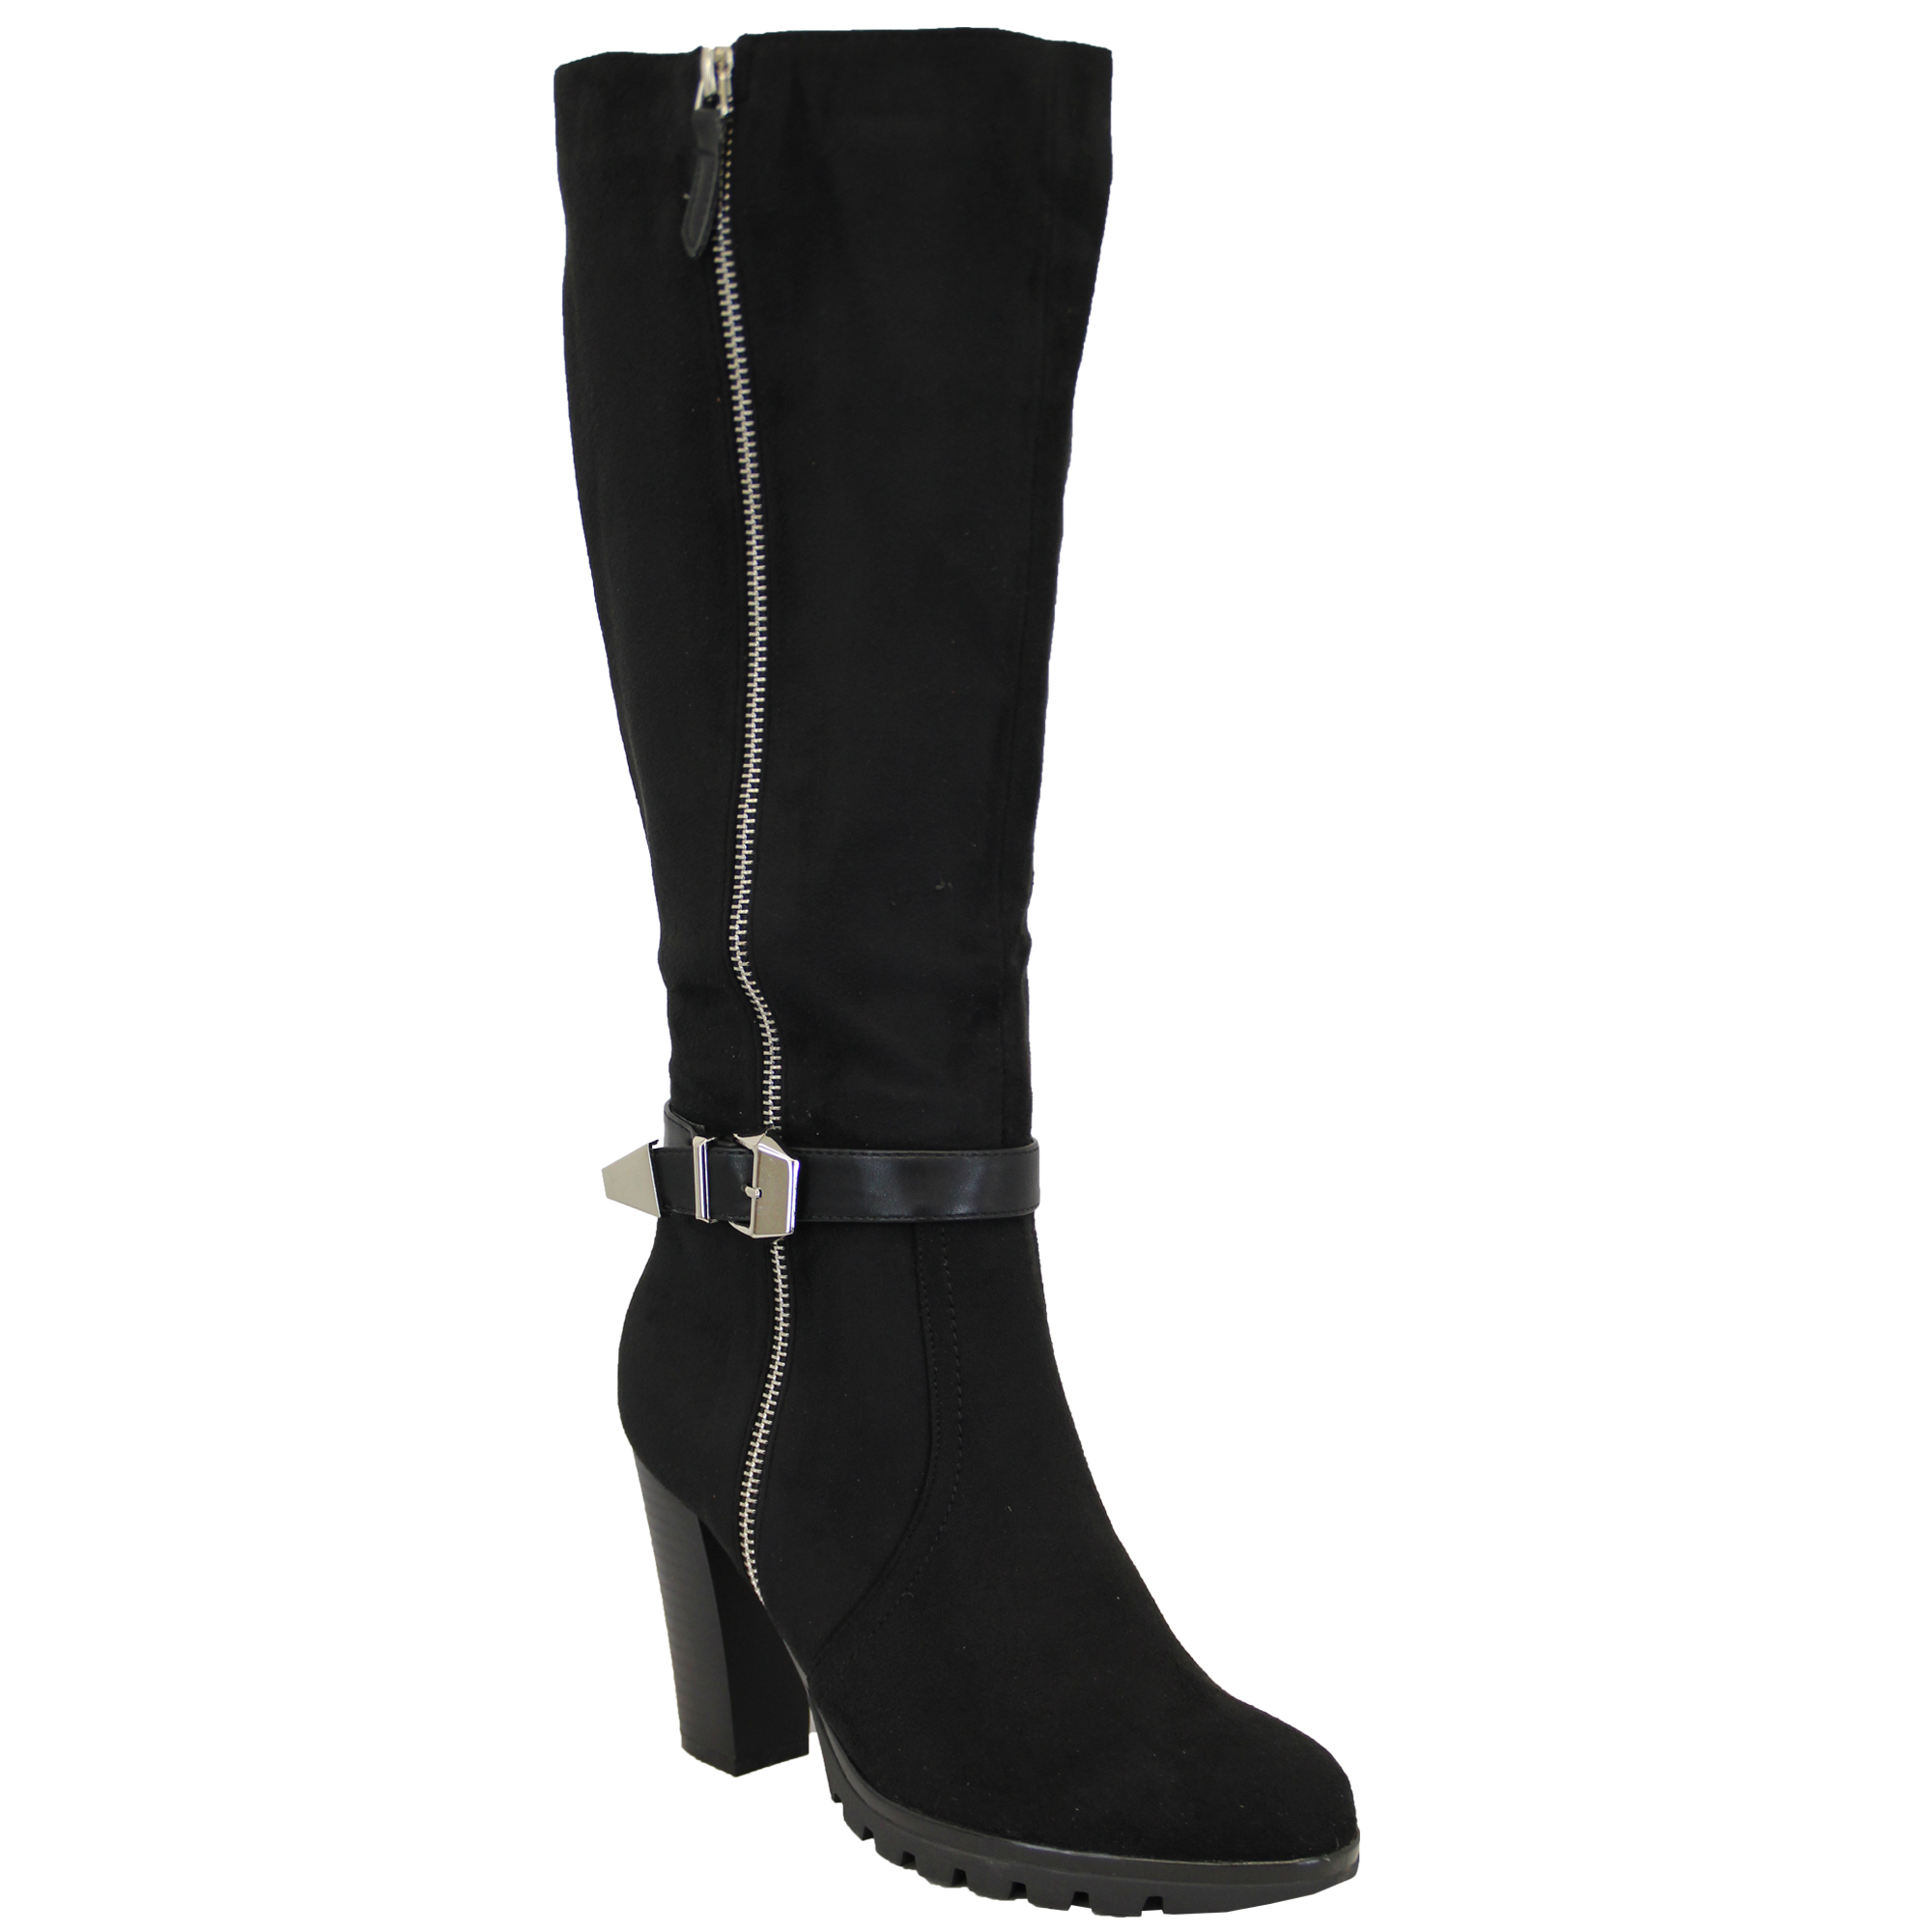 Find a great selection of women's knee-high boots at europegamexma.gq Browse tall cowboy boots, rain boots, riding boots and more. Totally free shipping and returns on all the best brands including Steve Madden, Sam Edelman, and Blondo.